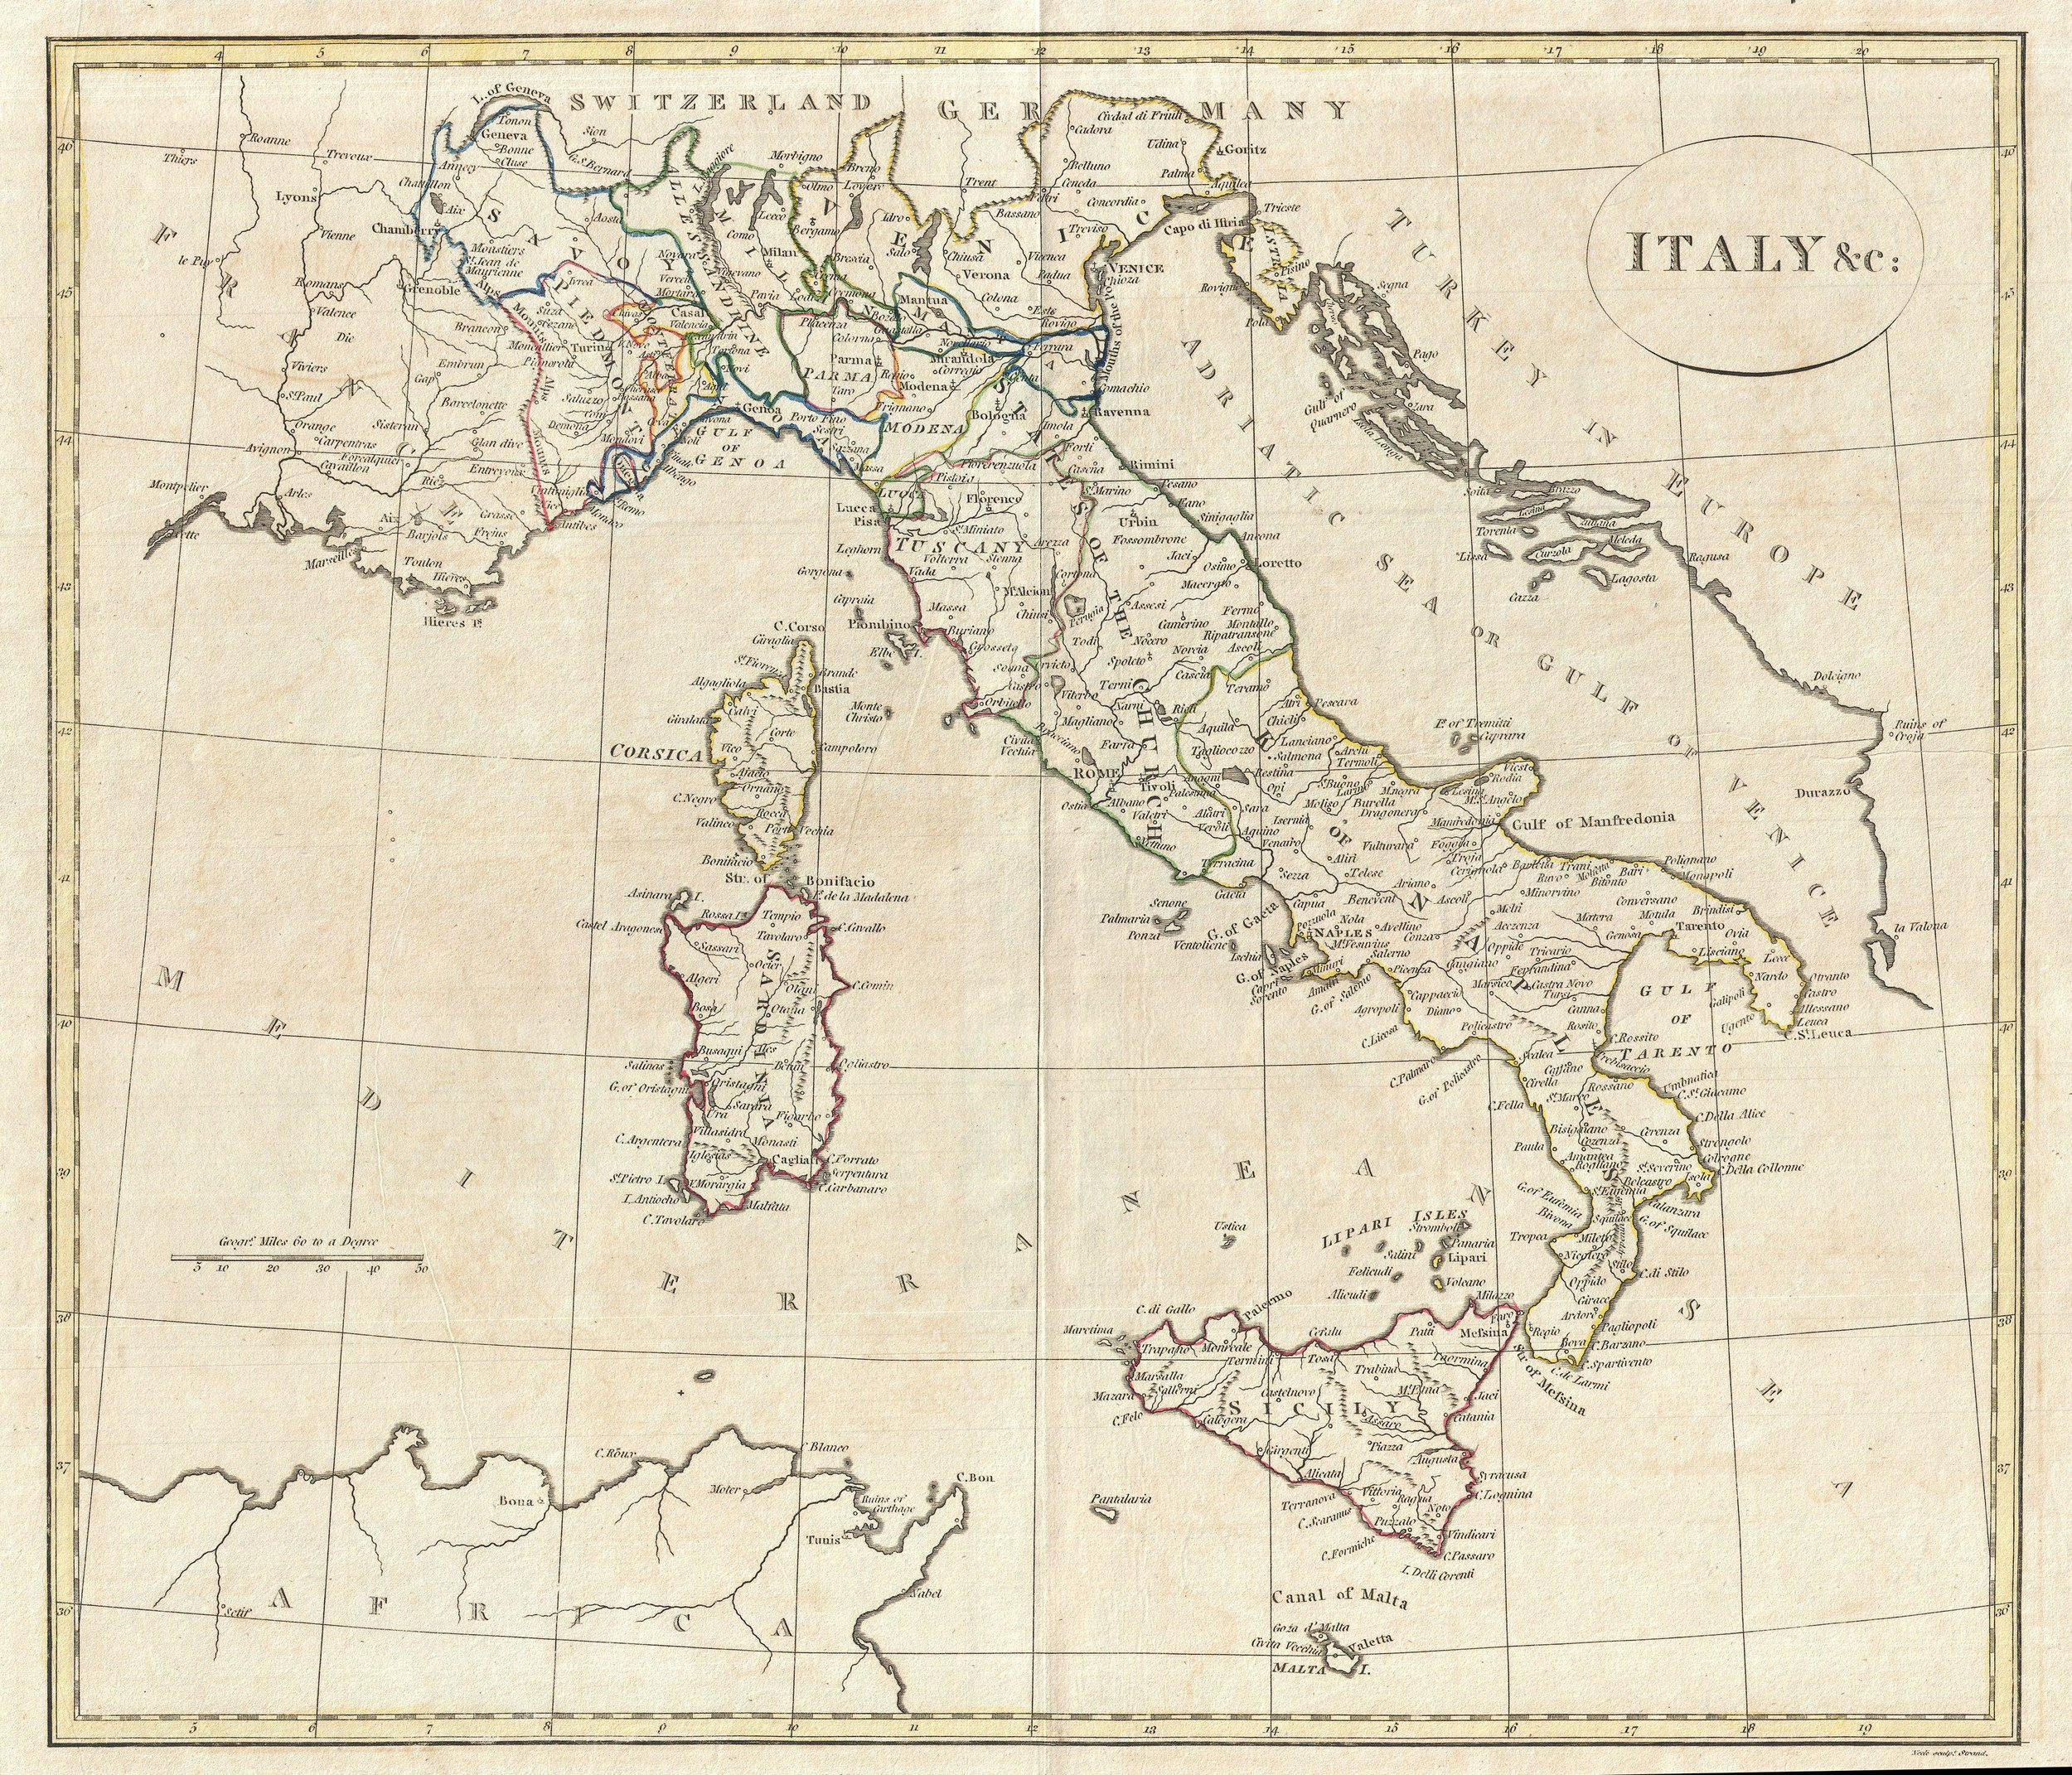 1799_Clement_Cruttwell_Map_of_Italy_-_Geographicus_-_Italy-cruttwell-1799.jpg